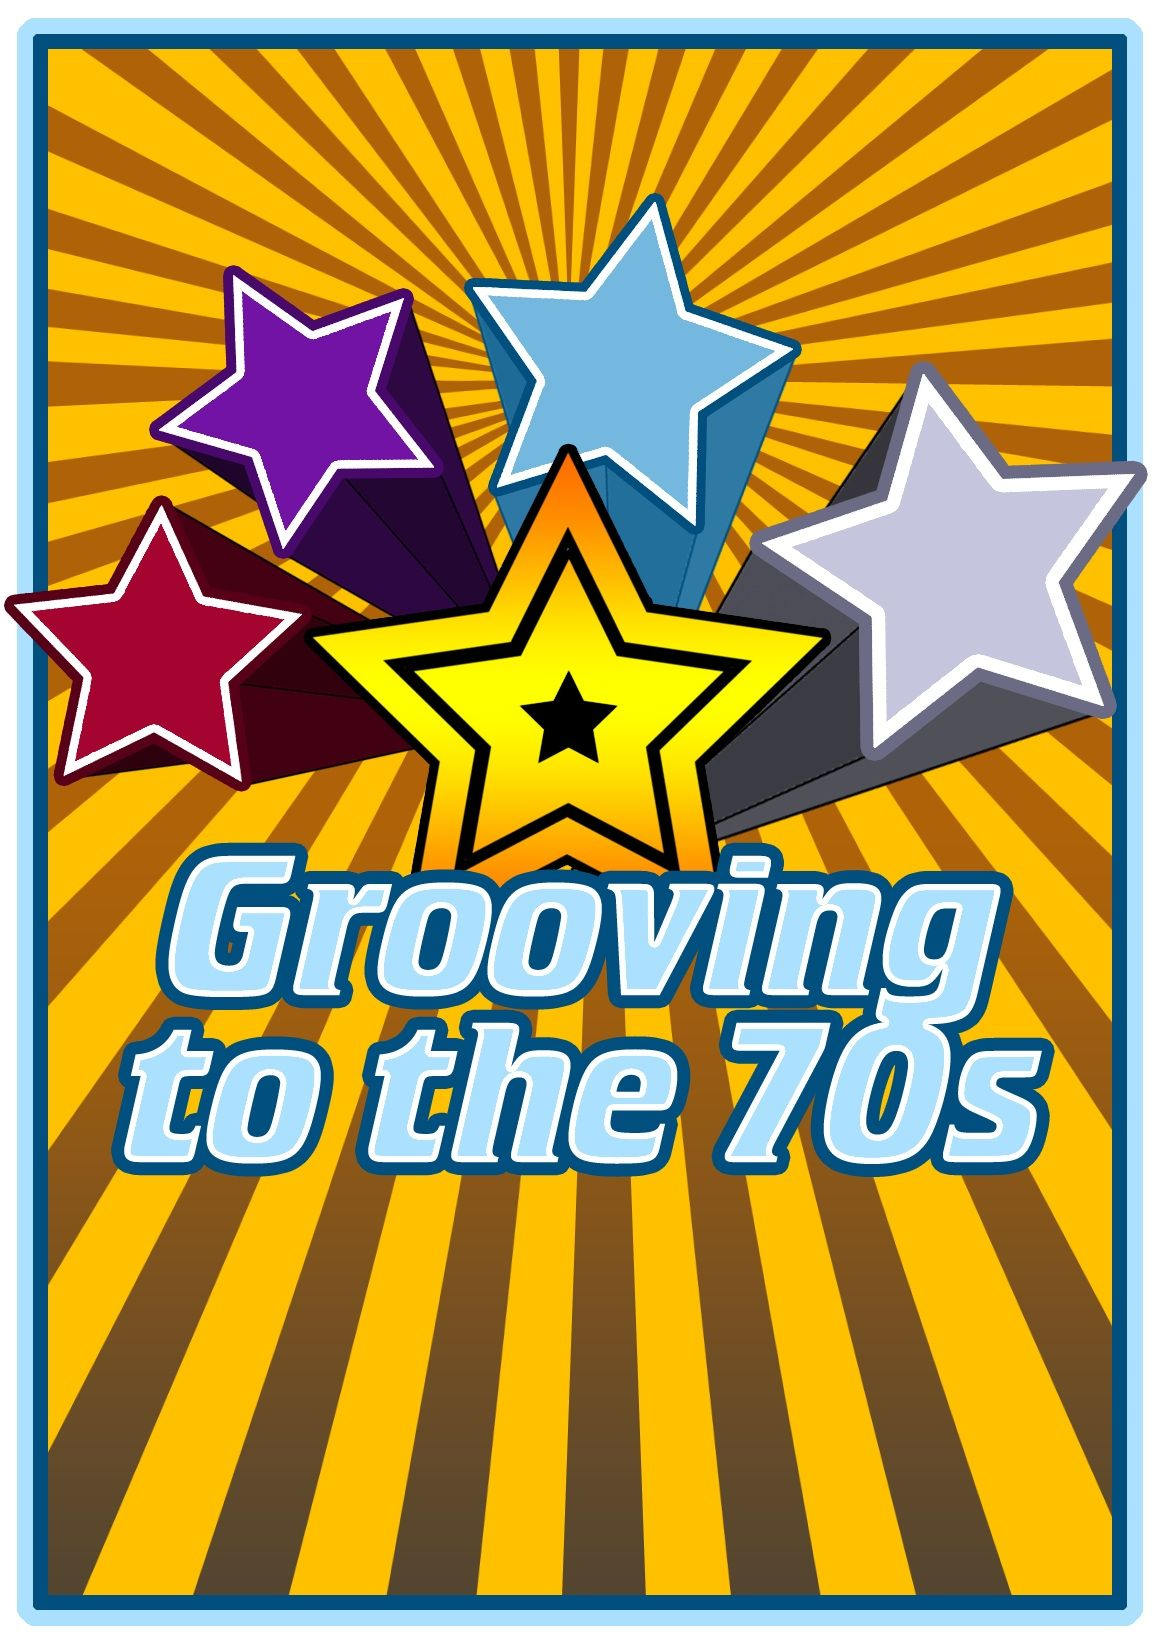 70 s style pictures of the 70s posters design life hippy image search soundtrack